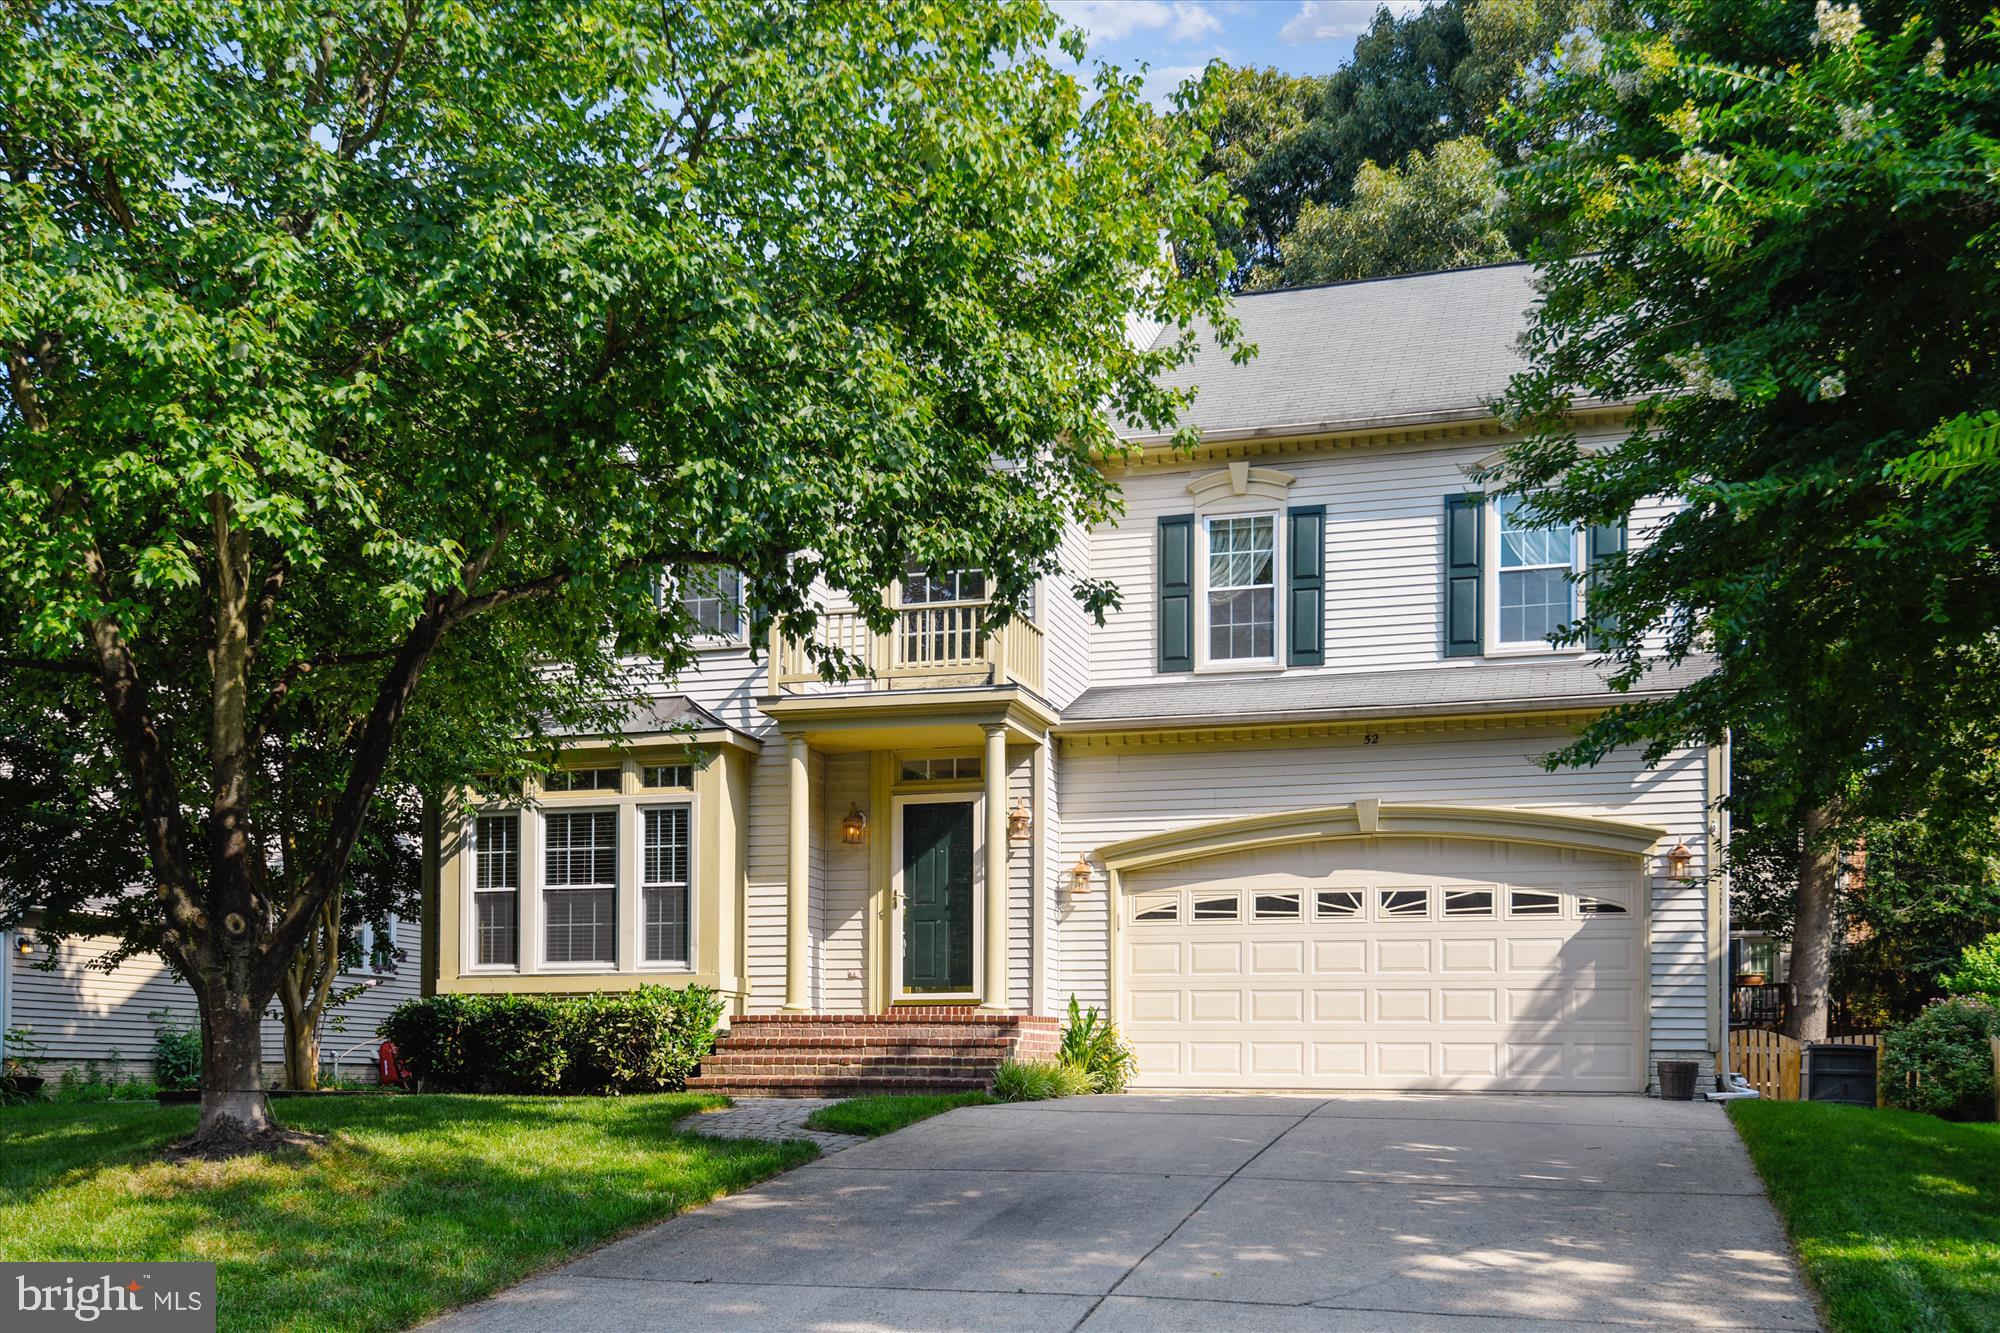 Great location in Severna Park. This lovely community of Cypresspointe is just what you are looking for. Large colonial home with finished basement that includes bedroom, full bath, wet bar, gaming area and play/tv area. Main level has open foyer, large kitchen with center island overlooking the family room with fireplace. Upstairs you will find a large master suite with super bath, walk-in closet and more, plus 3 other bedrooms and a full bath. This home has a paver patio off the rear and a fenced in rear yard. New Roof too!! Must see!